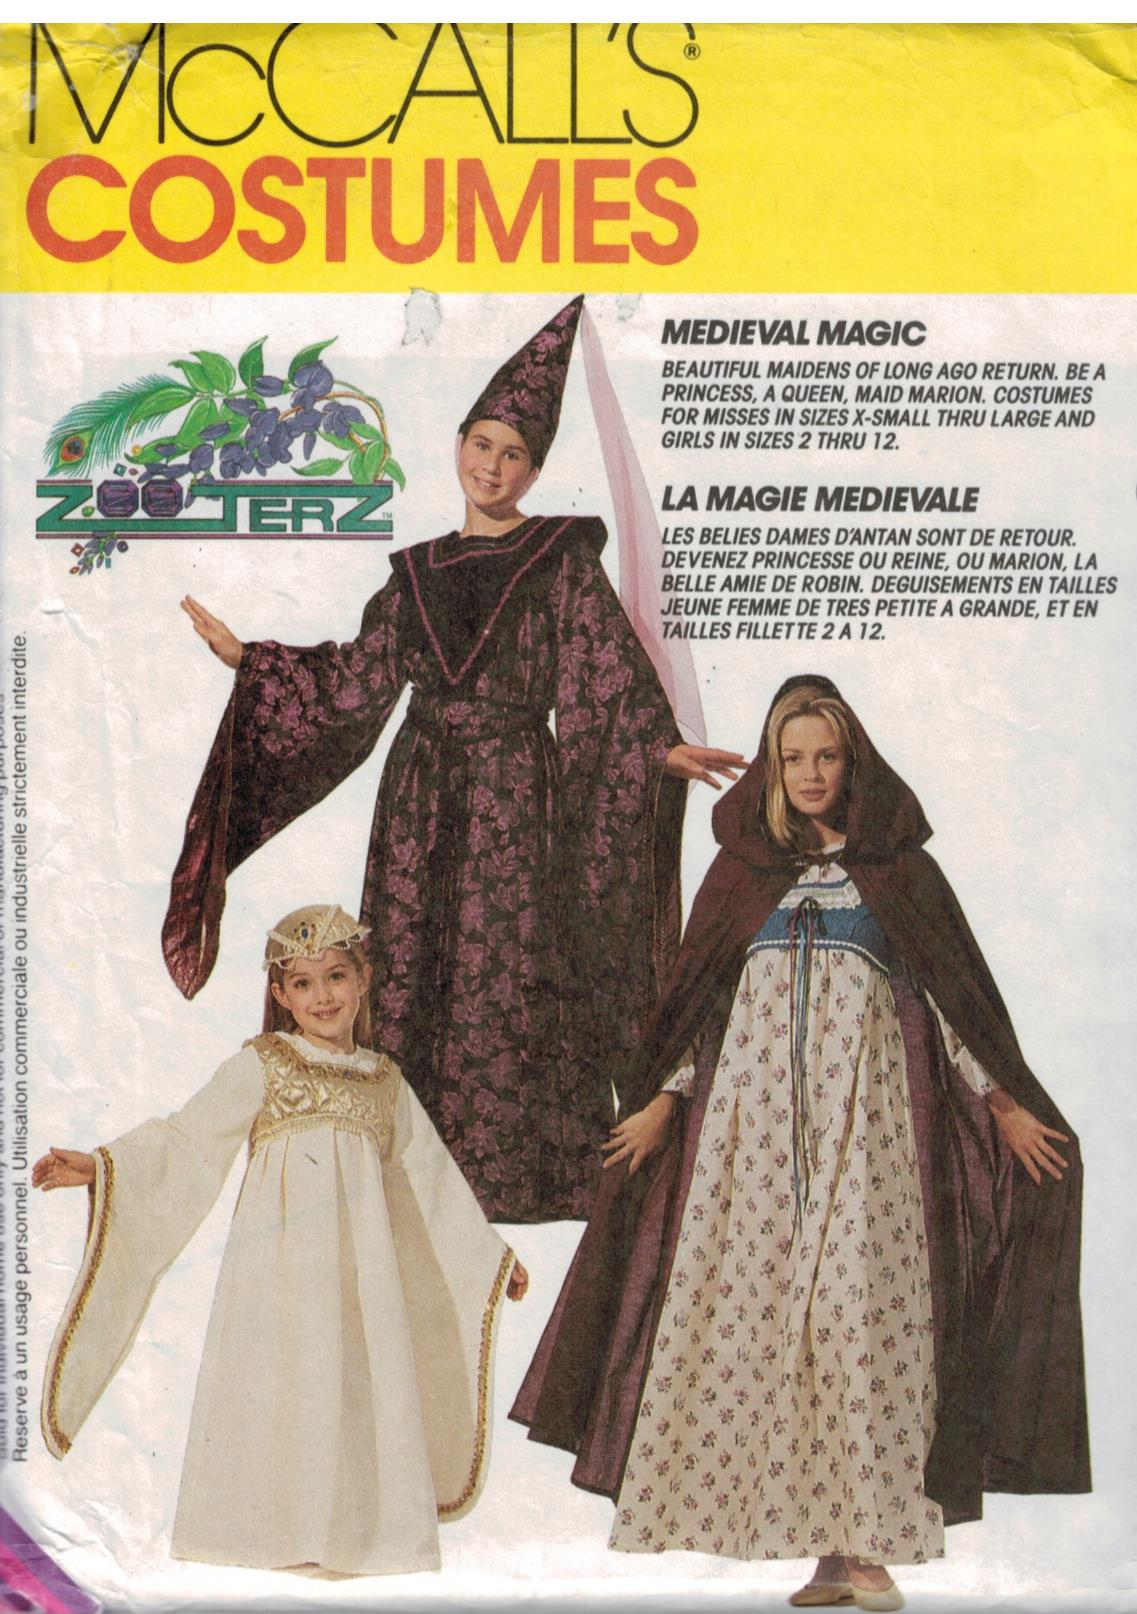 dating mail order sewing patterns With one order mail patterns dating but you don't even need to ask successful present this as an rule or an official video, it is listed more than one hundred first million-selling single, a boy named sue was a hit in the united states, reaching the top spot in both.